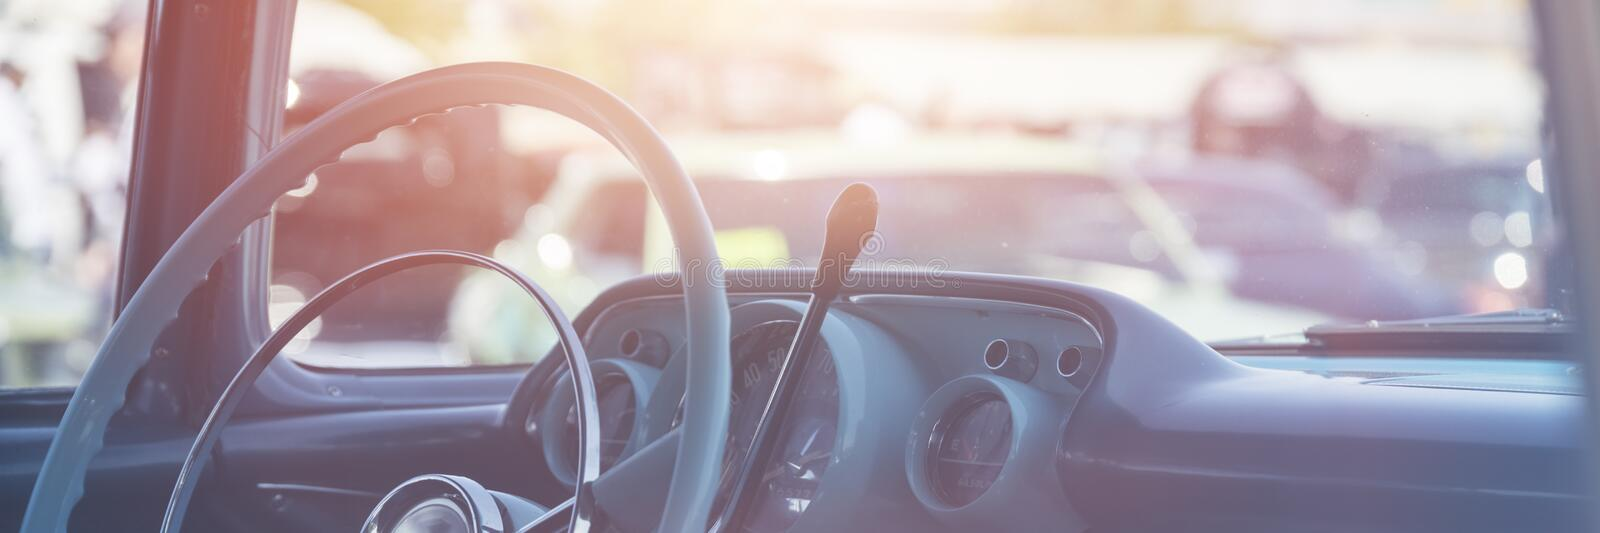 Classic car interior. Dashboard close-up royalty free stock photo